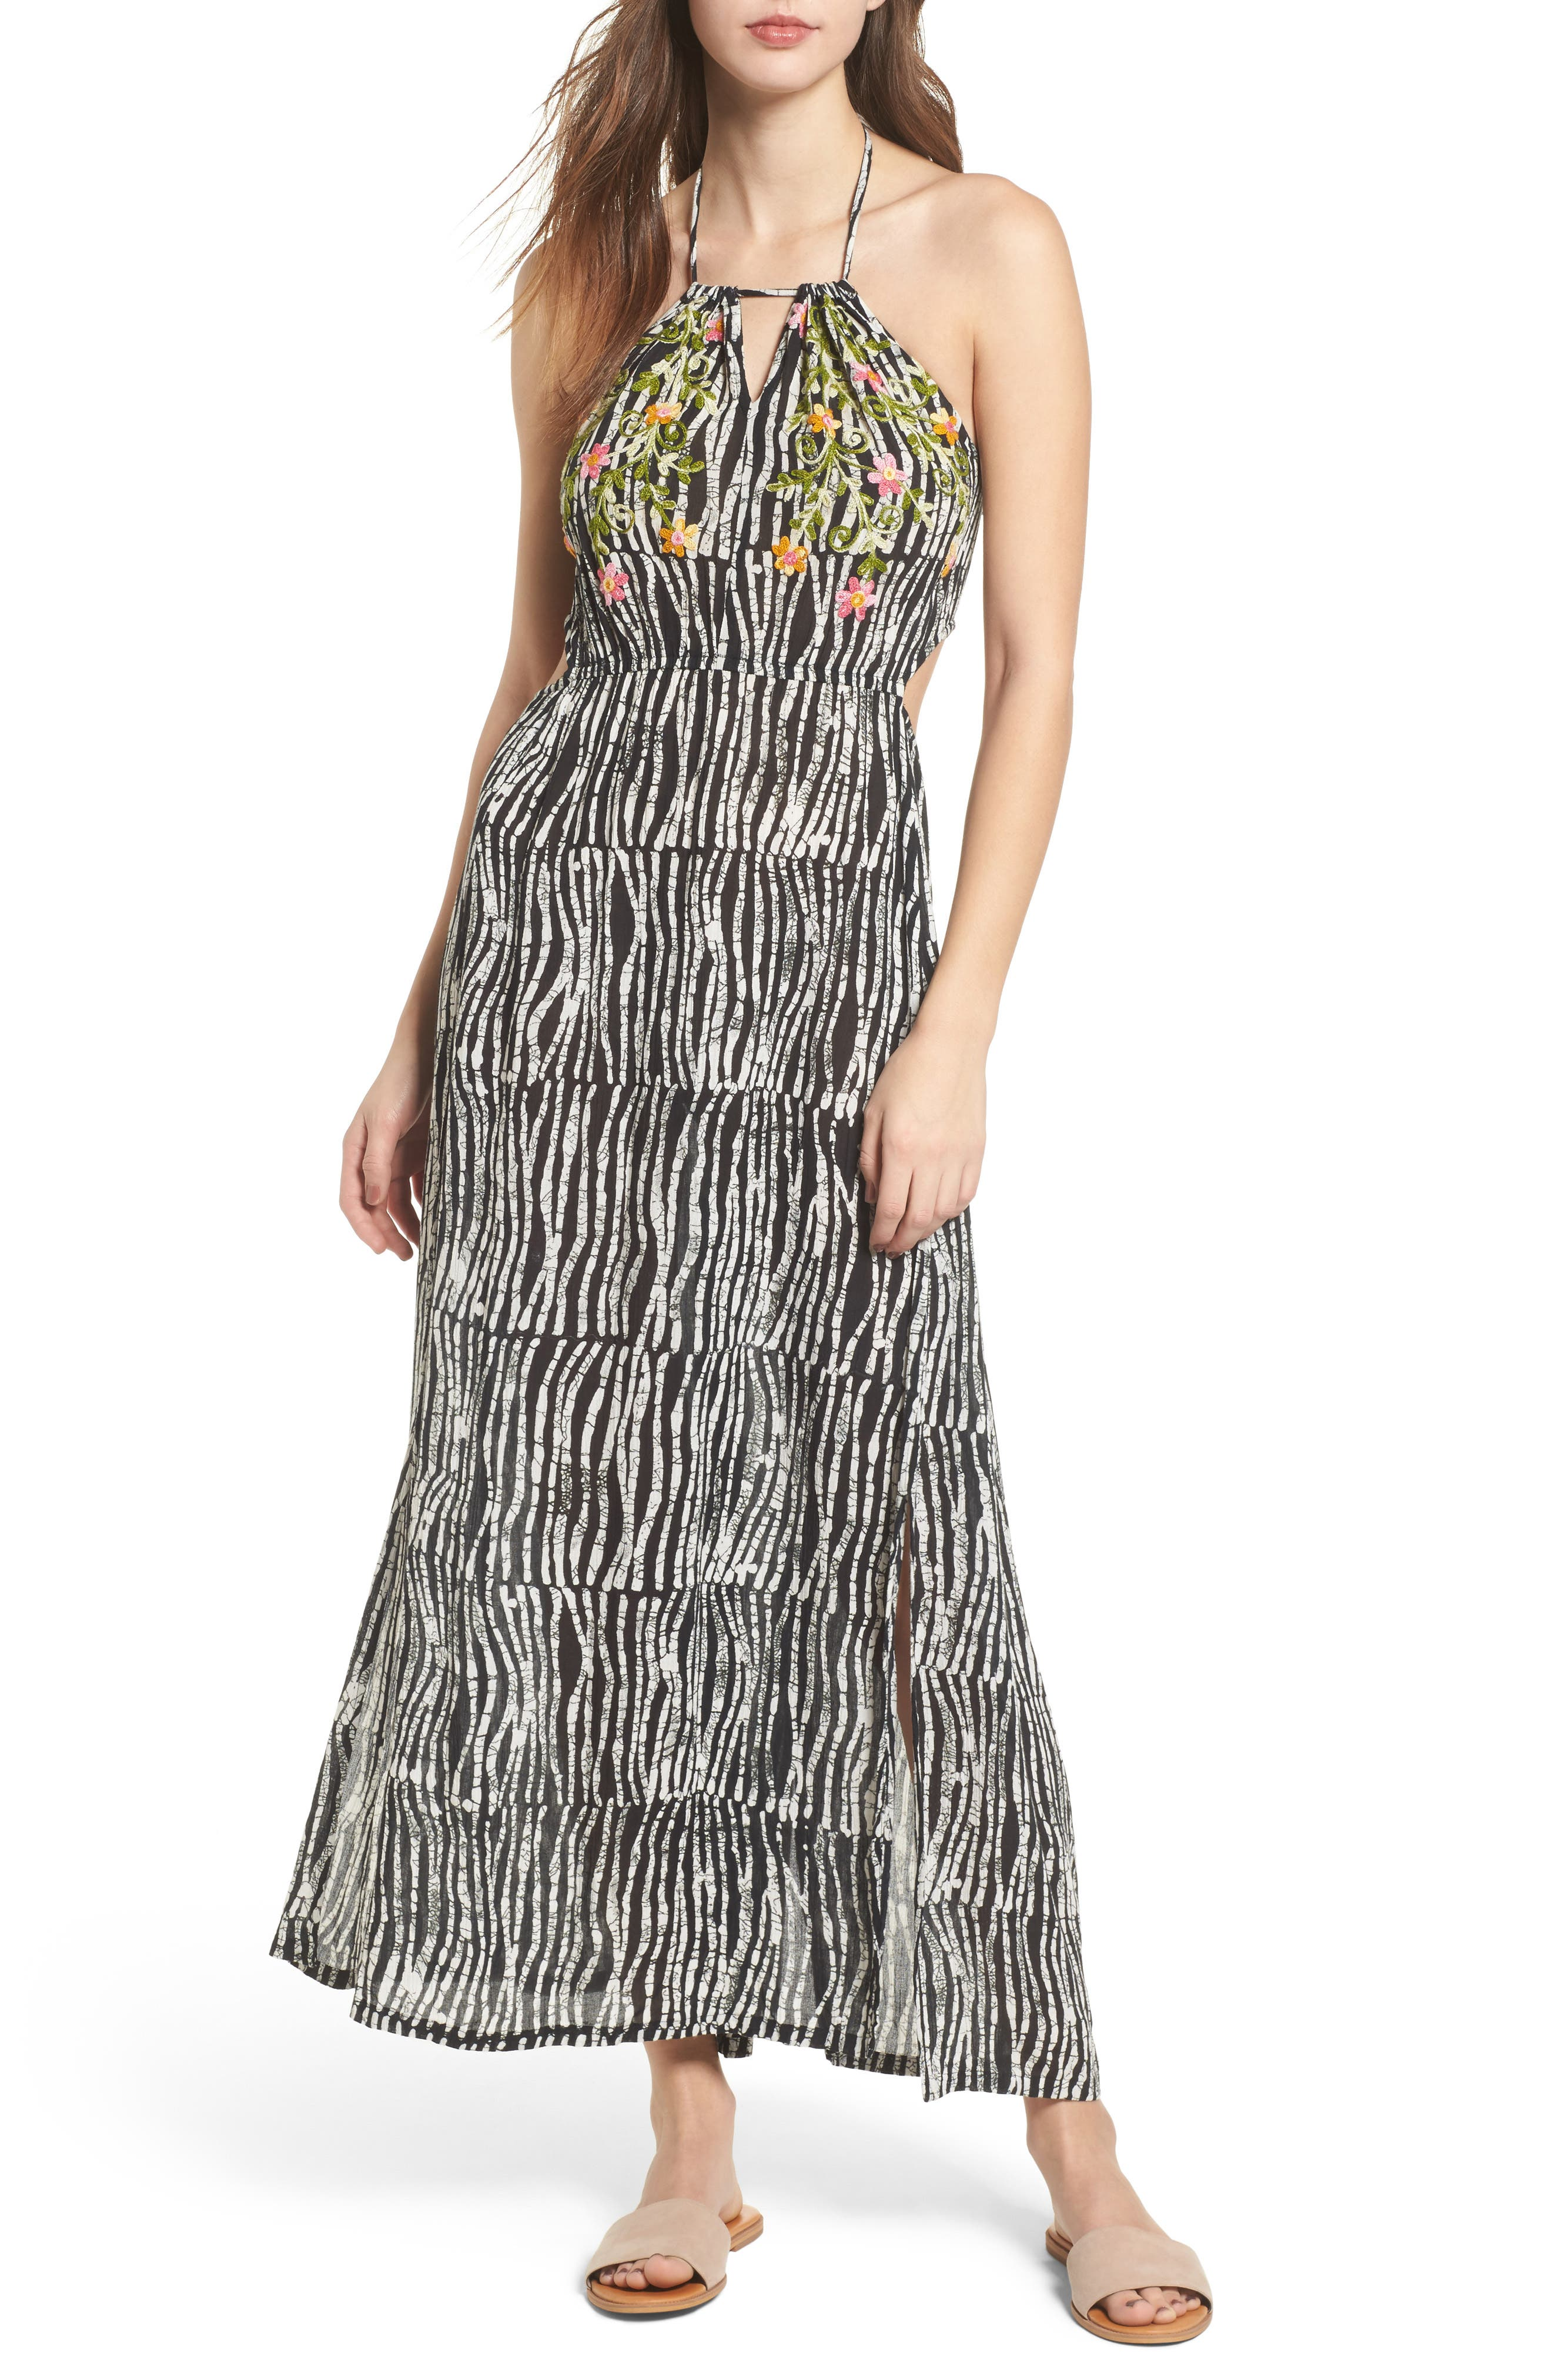 Before Dawn Embroidered Maxi Dress,                         Main,                         color, Black/ White